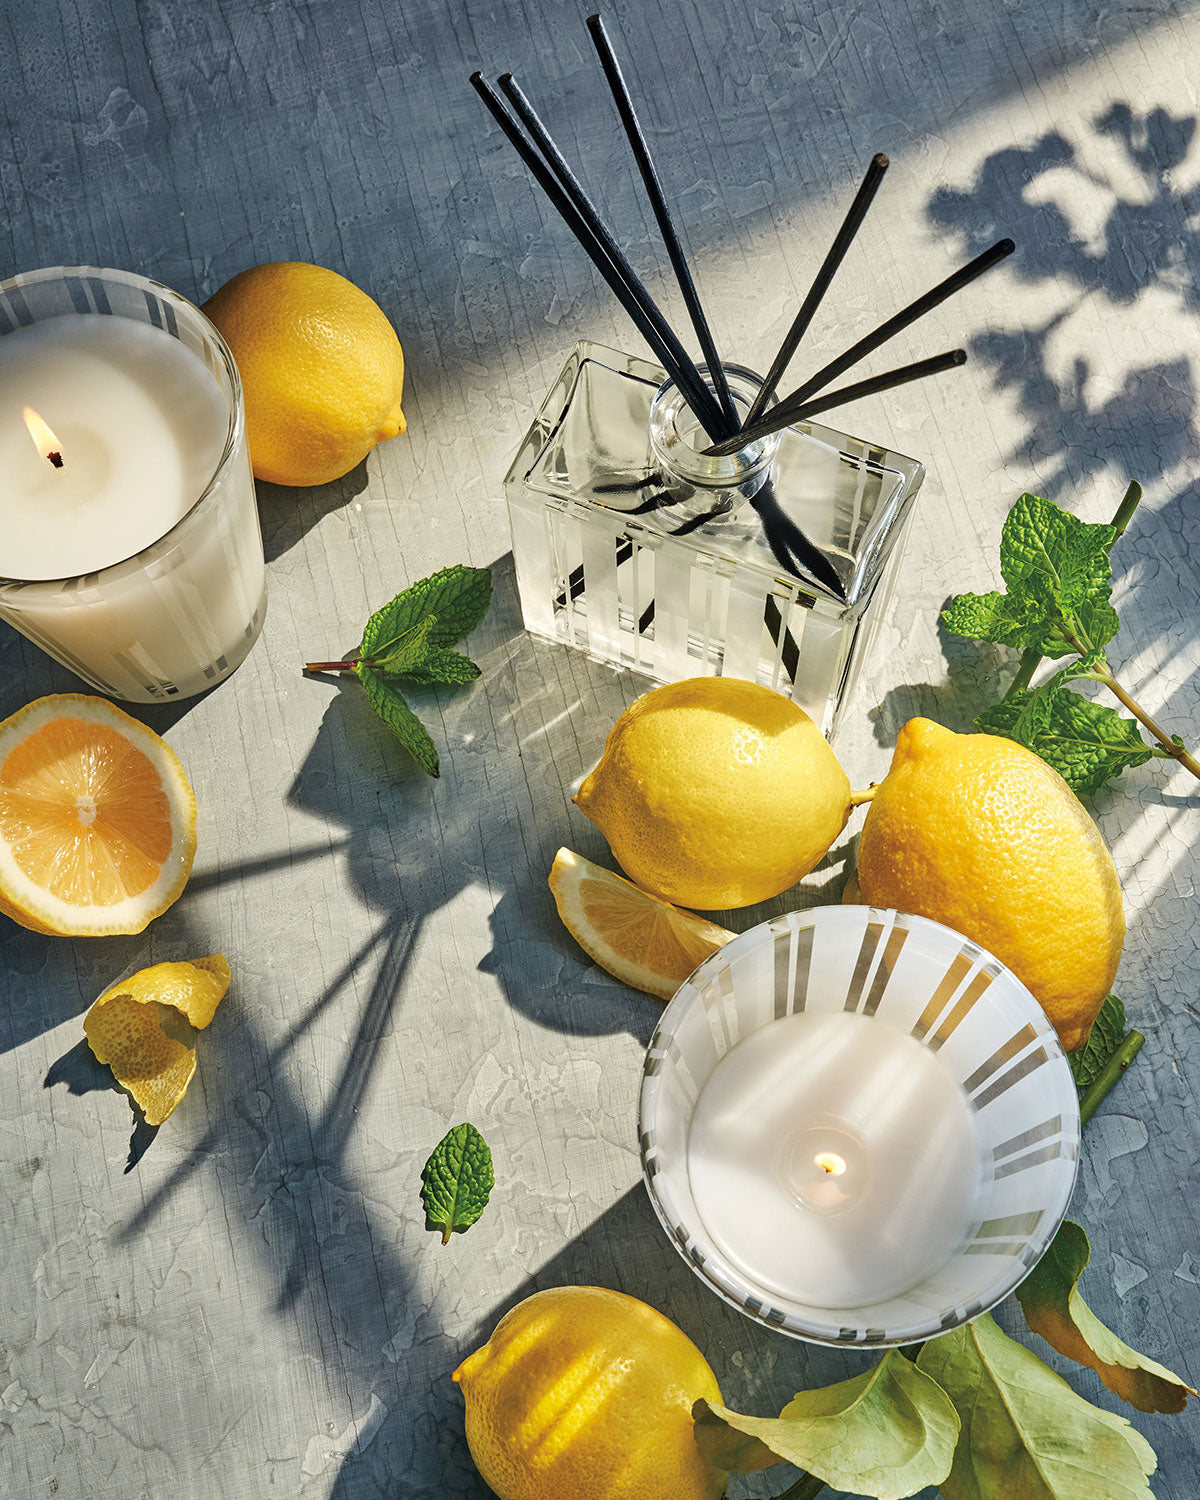 NEST Fragrances Amalfi Lemon & Mint Candles and Reed Diffuser Nestled Amongst Fresh Lemons